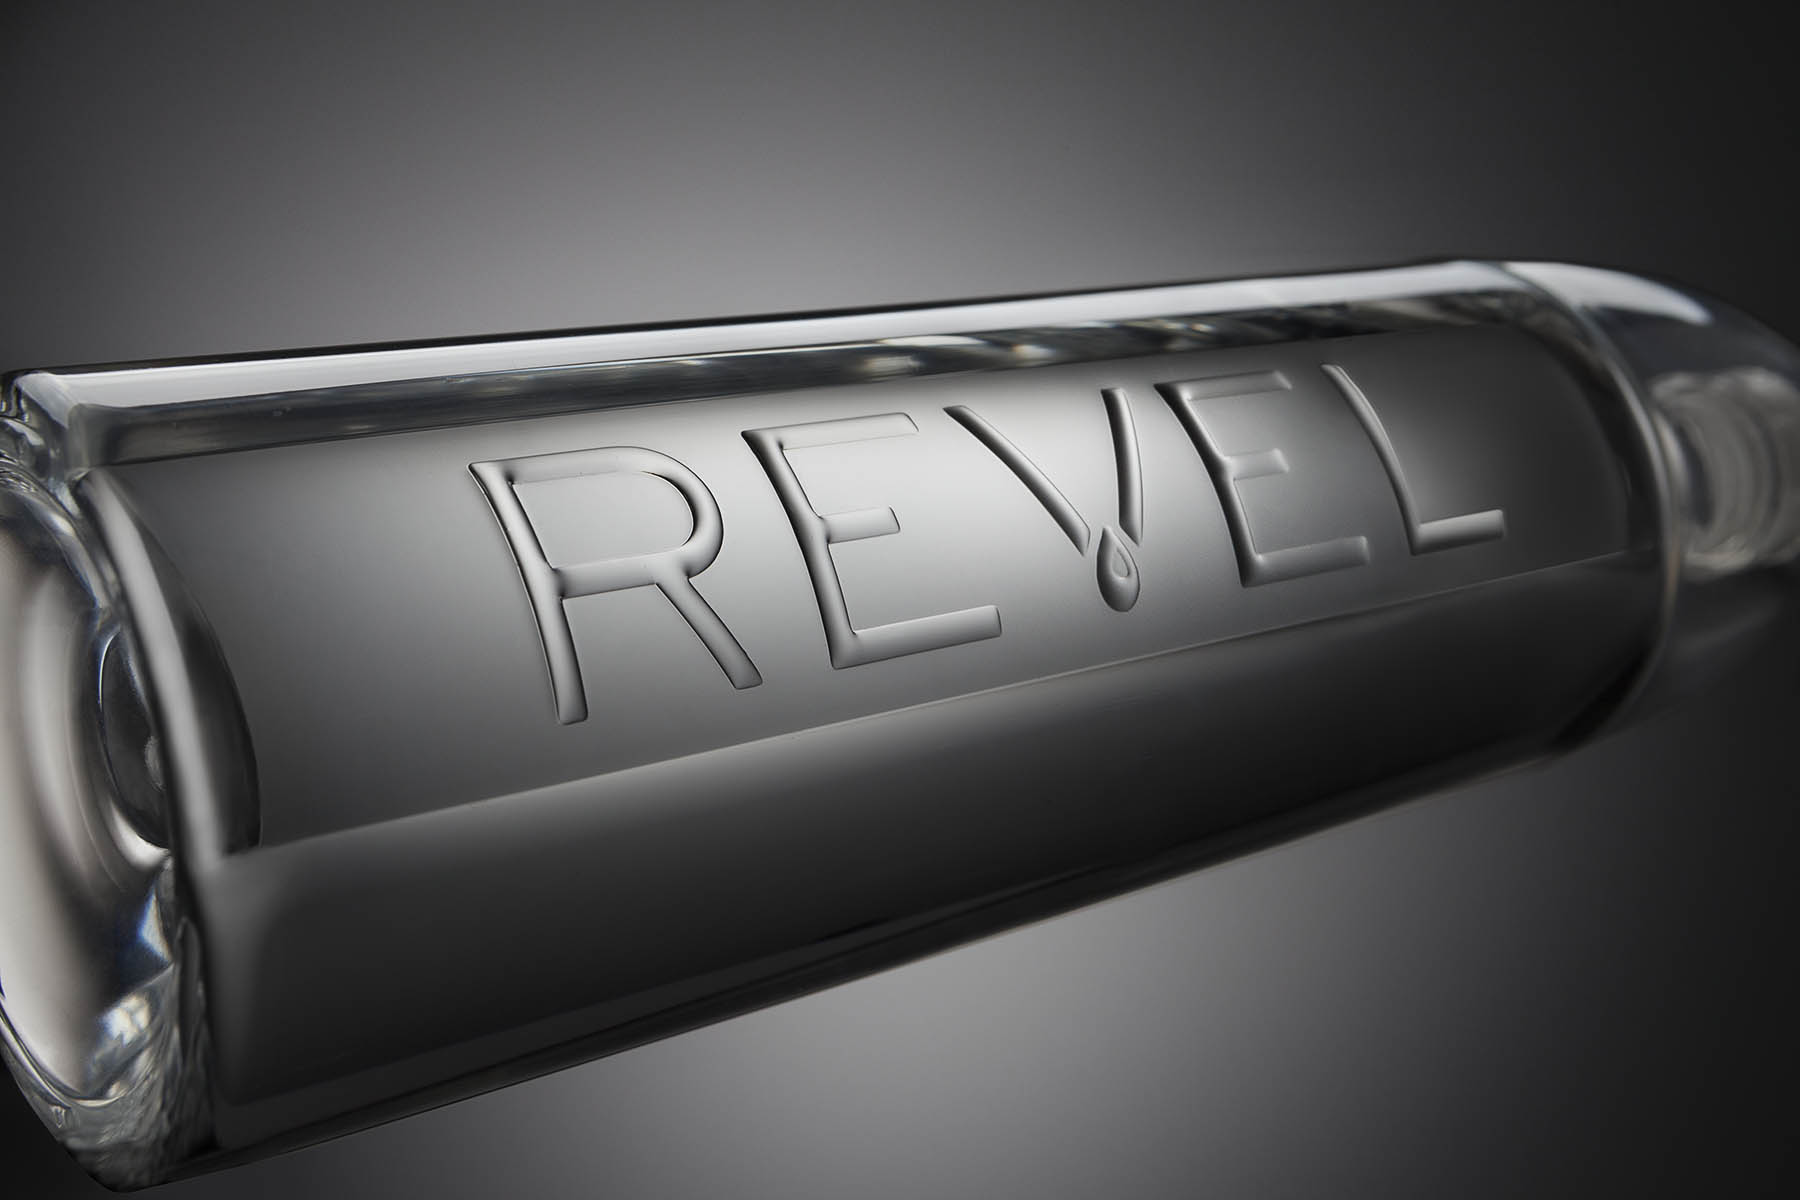 Revel water bottle | Dovis Bird Agency Reps